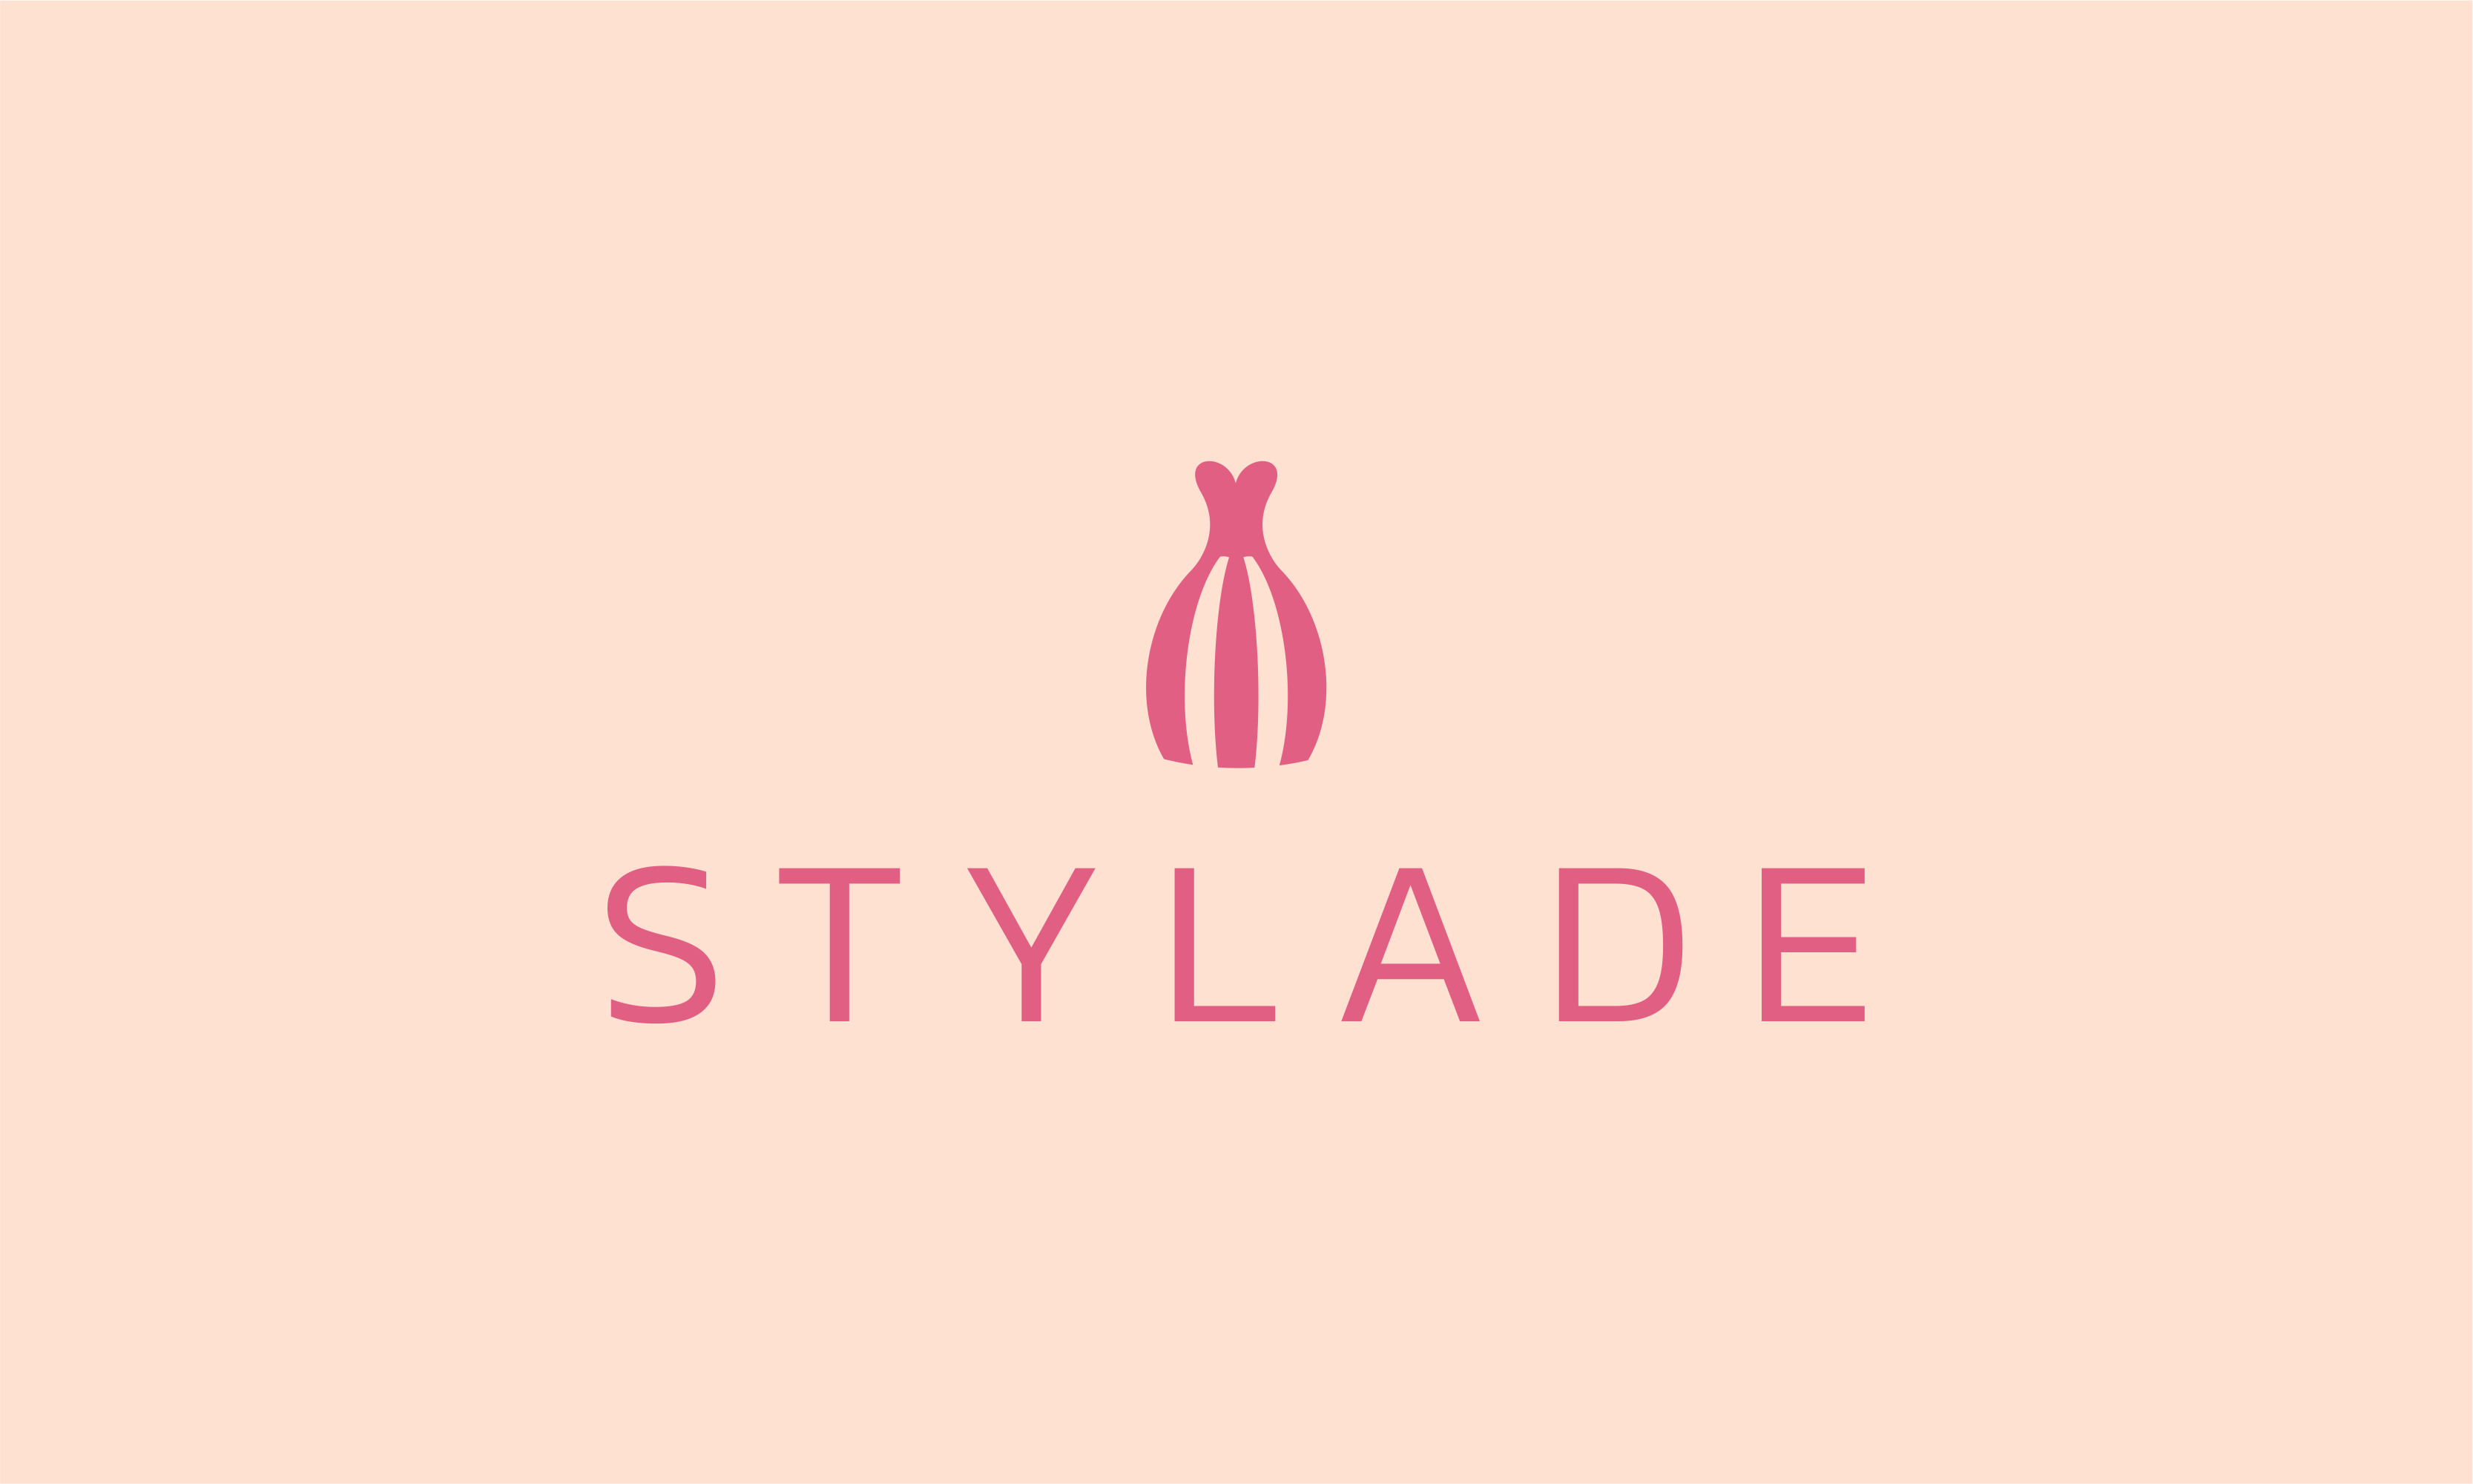 Stylade